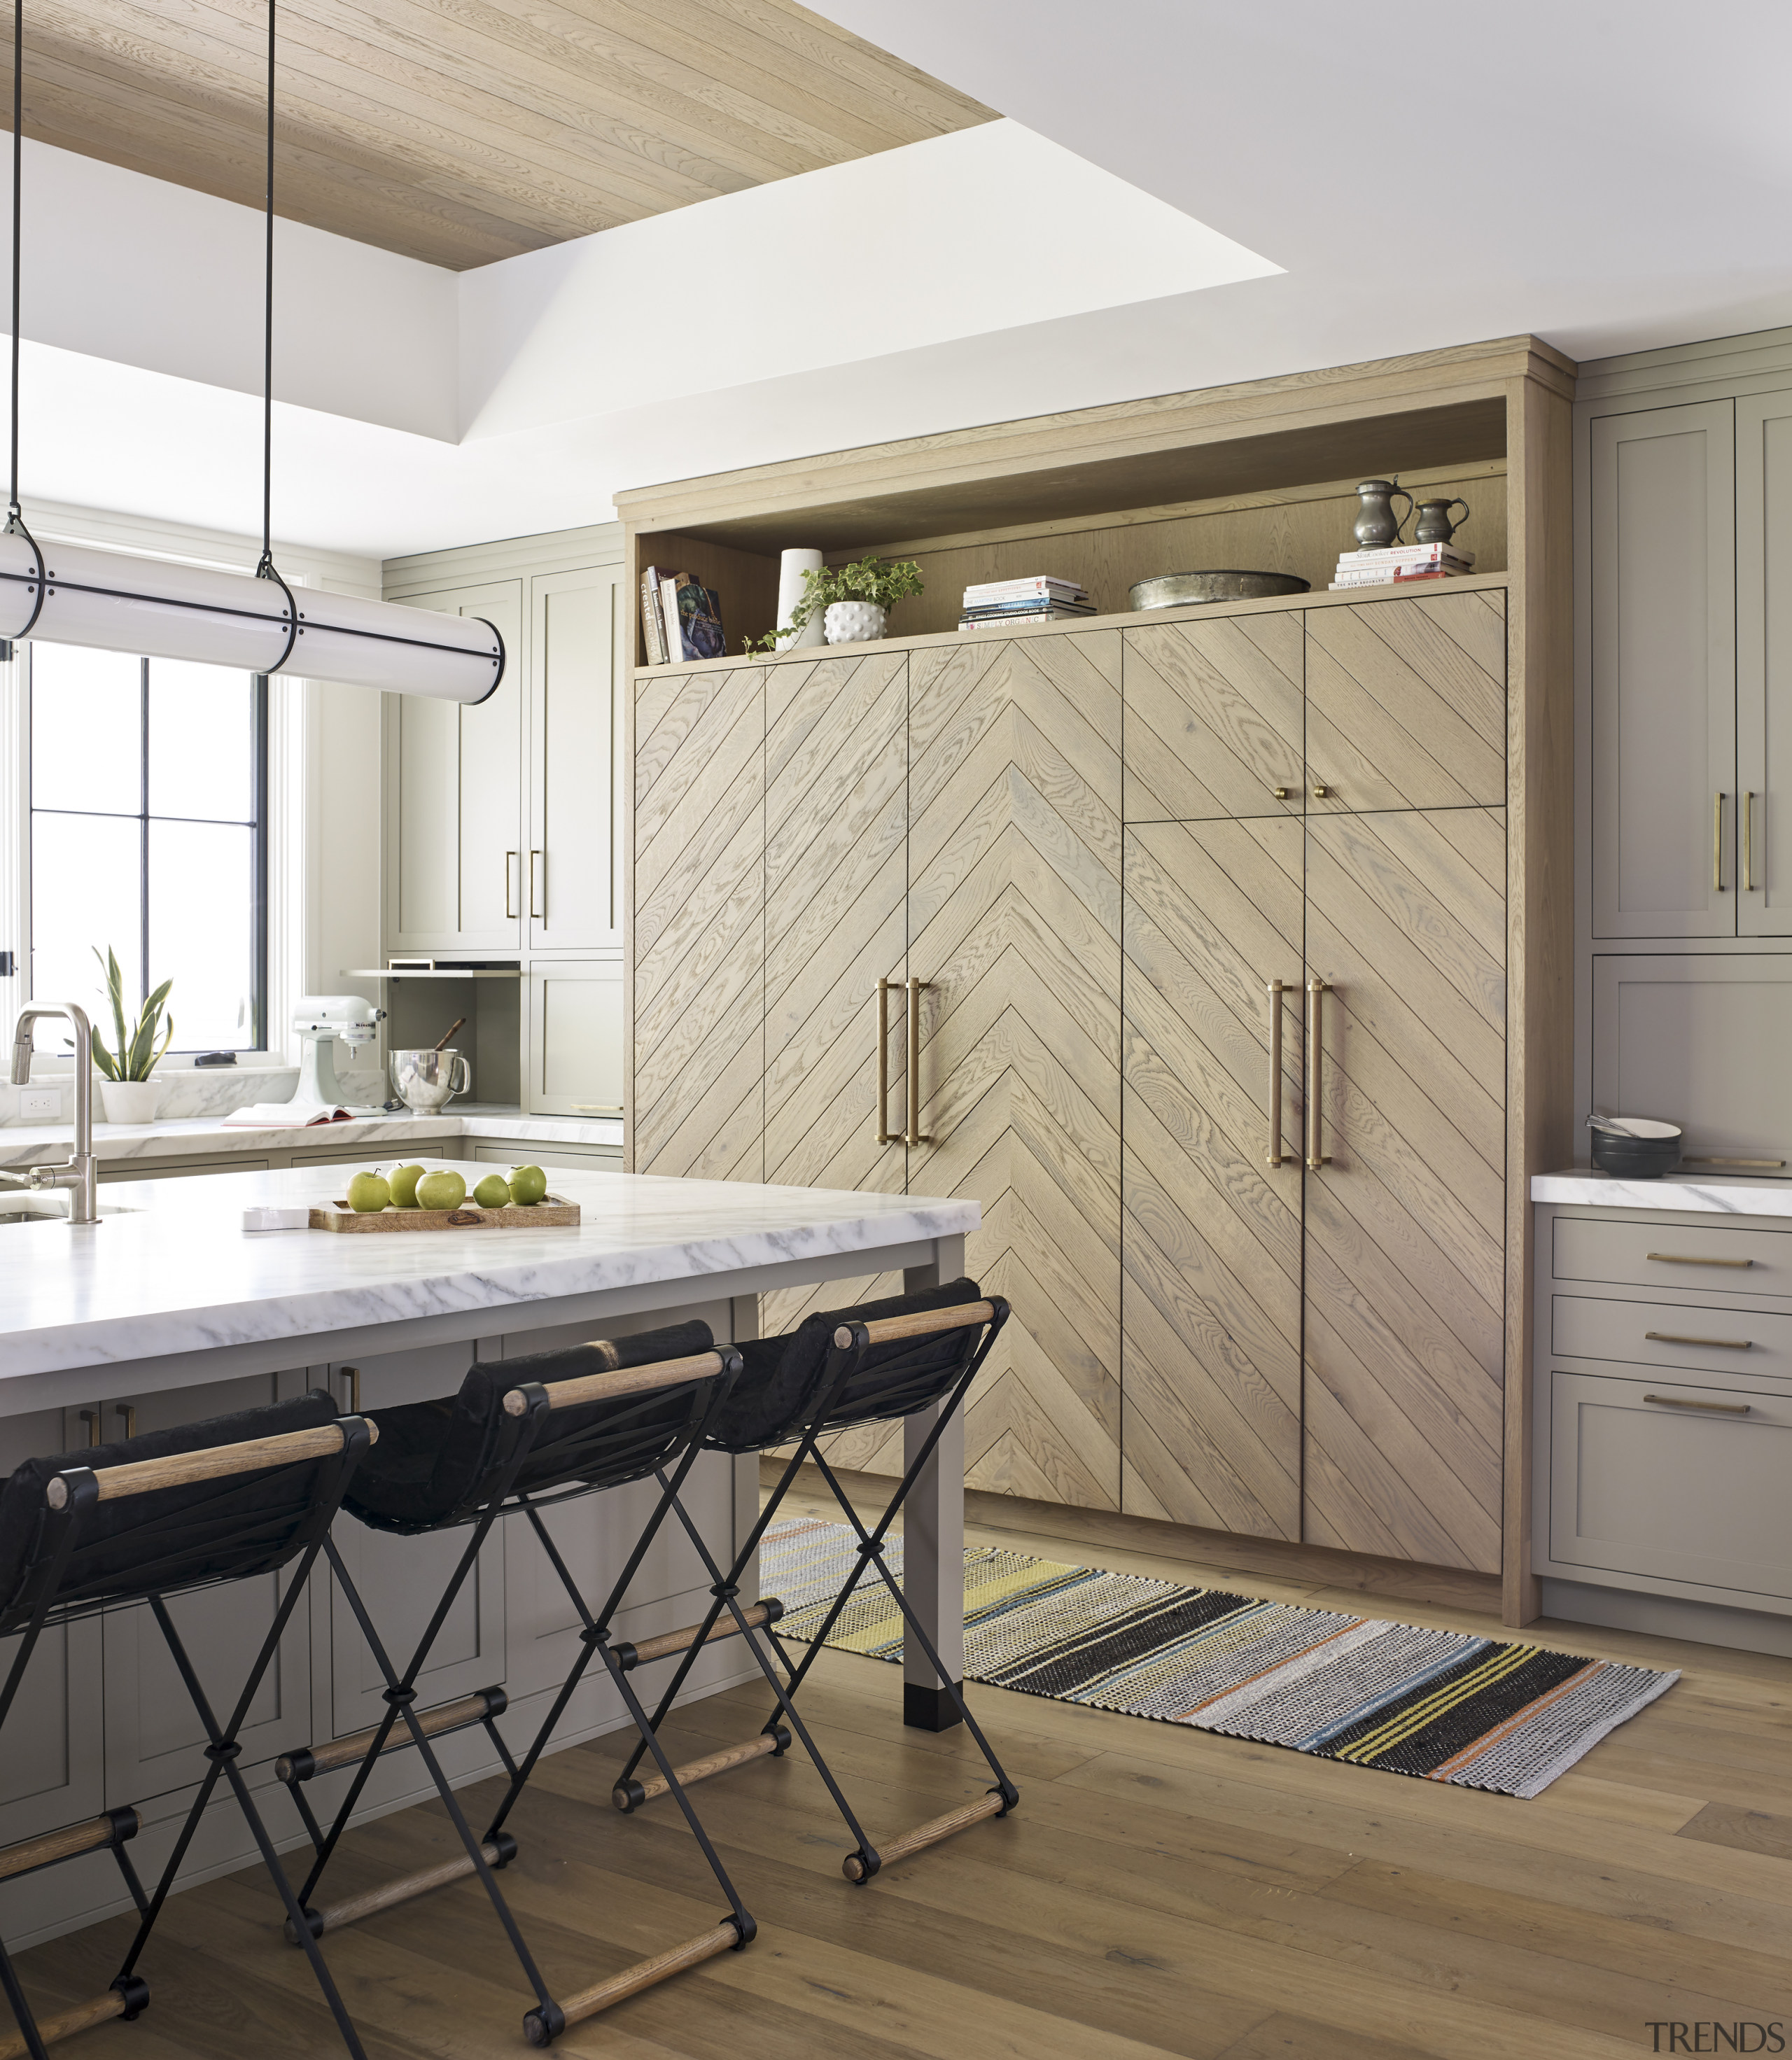 In this kitchen, classic paneled down-to-counter cabinetry hides